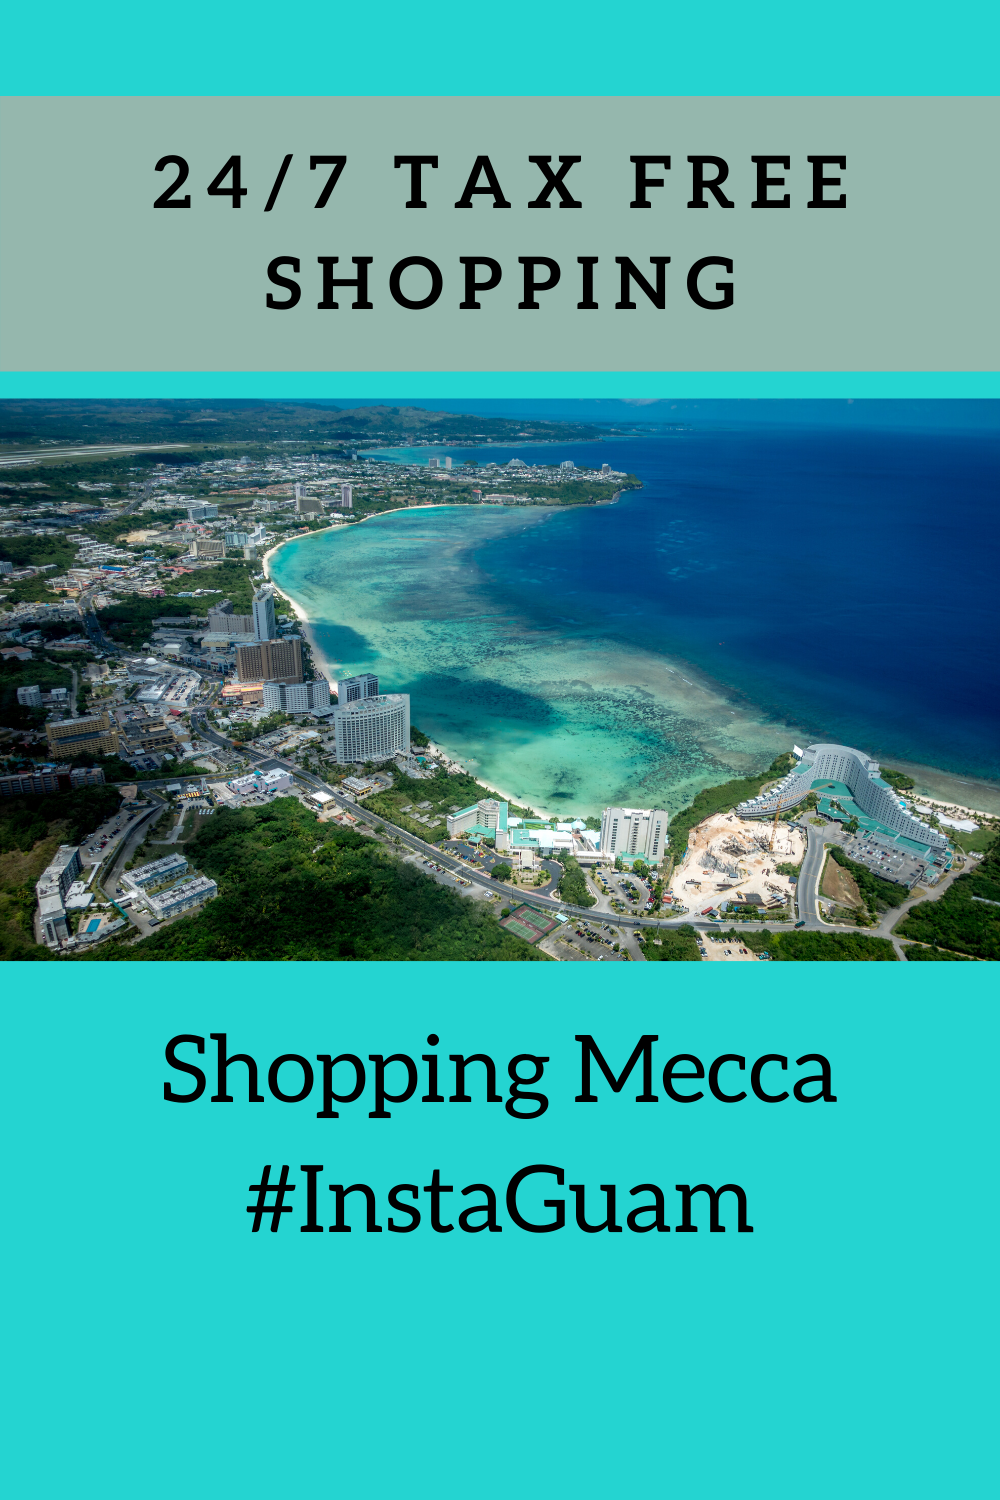 Guam: a modern tropical paradise surrounded by crystal clear waters and white sand beaches.